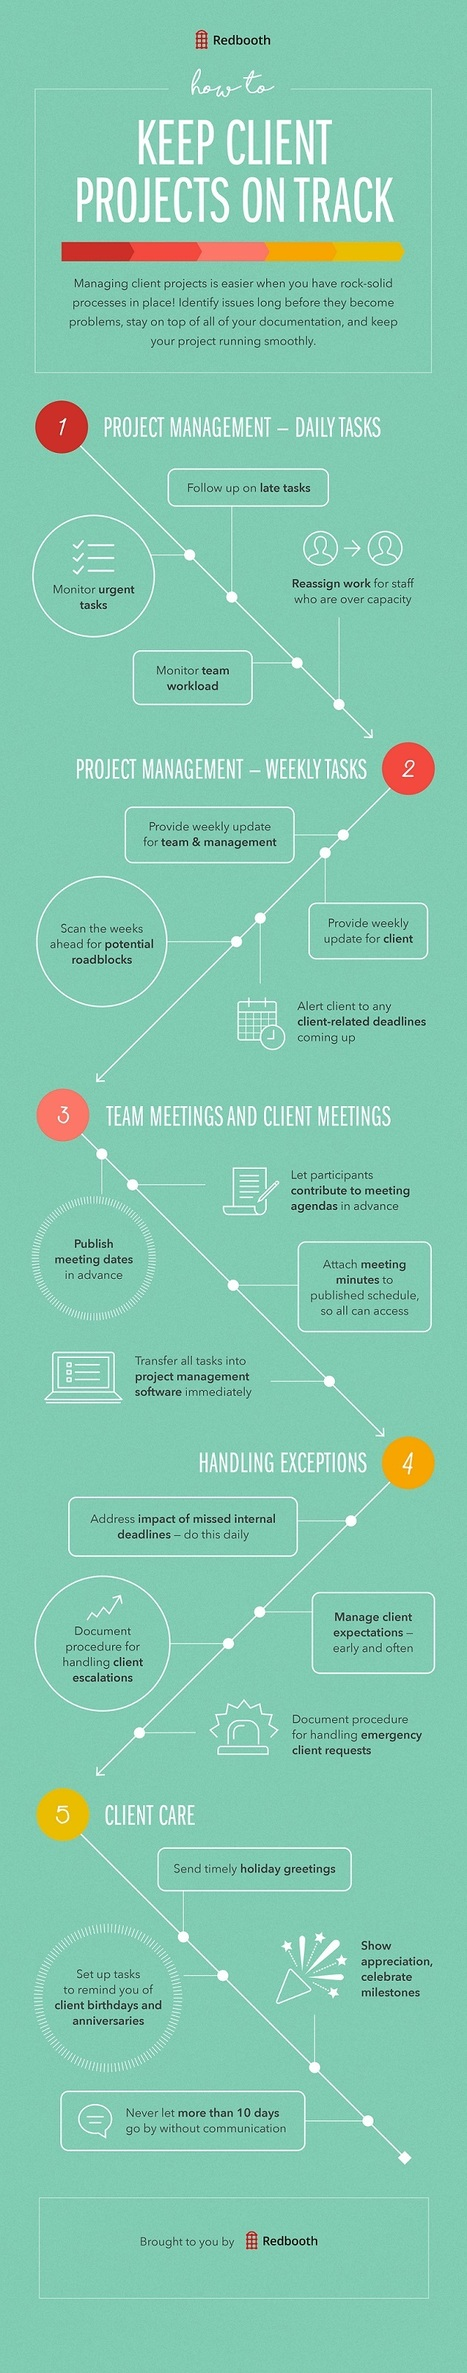 How to Keep Client Projects on Track [Infographic] | New Customer & Employee Management | Scoop.it